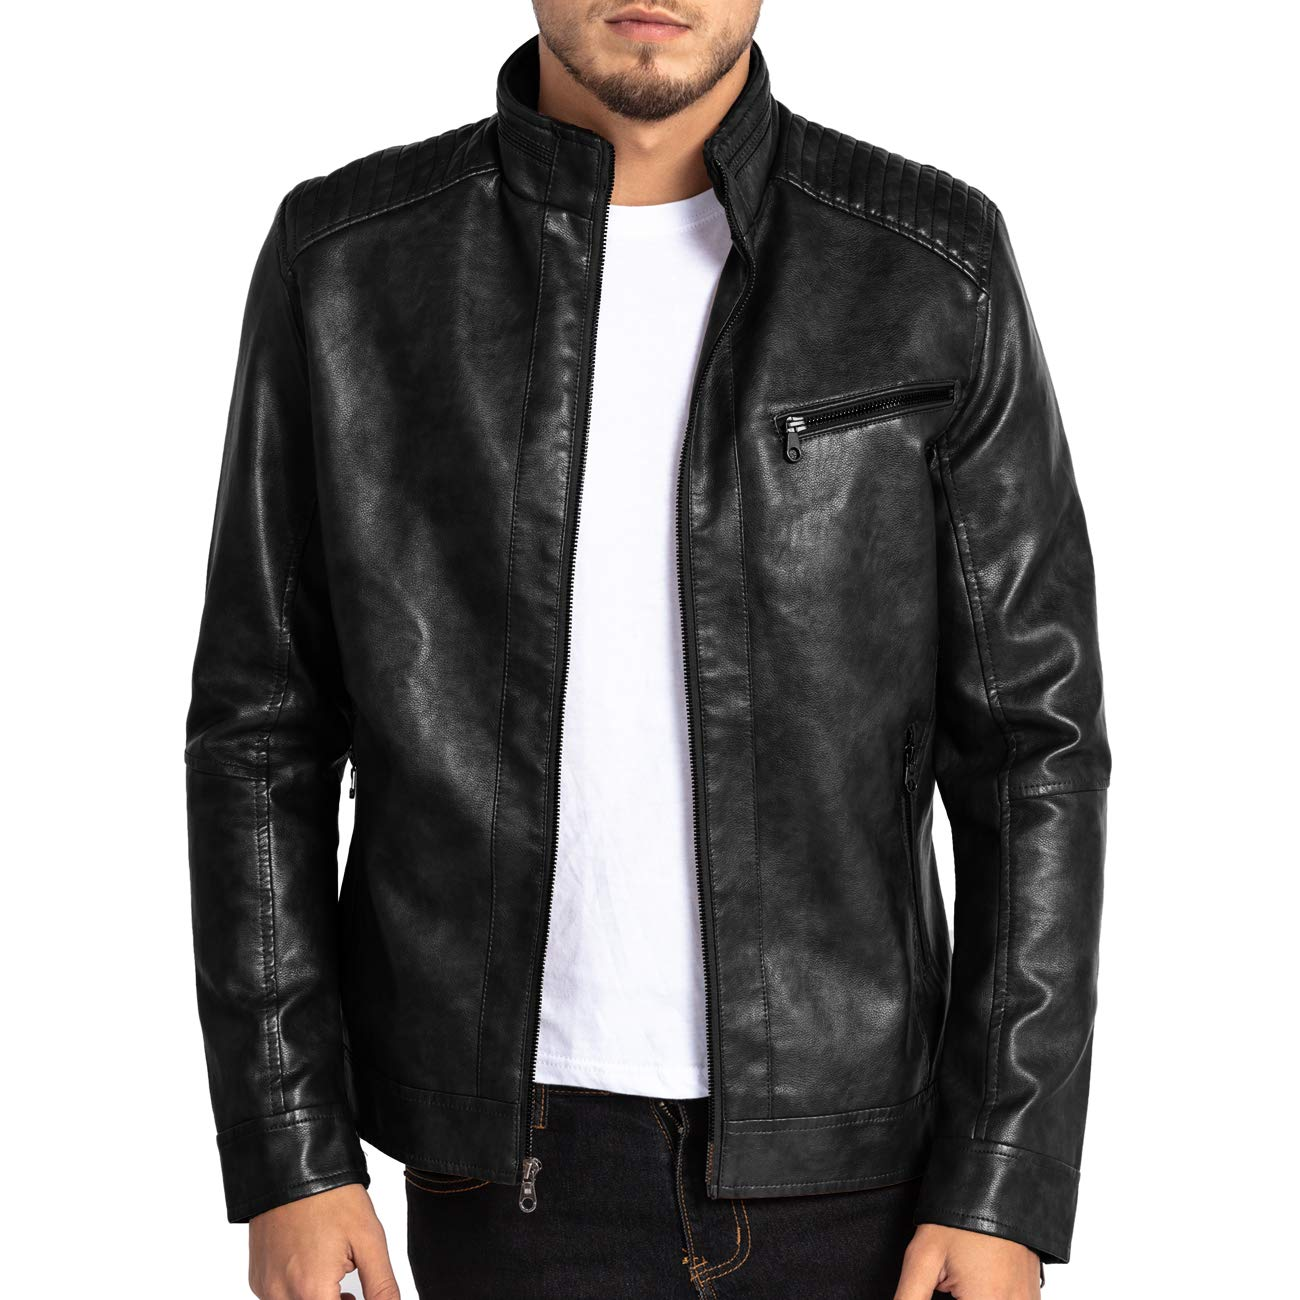 4b568281ed1 MAGE MALE Mens Leather Jacket Slim Fit Stand Collar PU Motorcycle Jacket  Lightweight at Amazon Men's Clothing store: